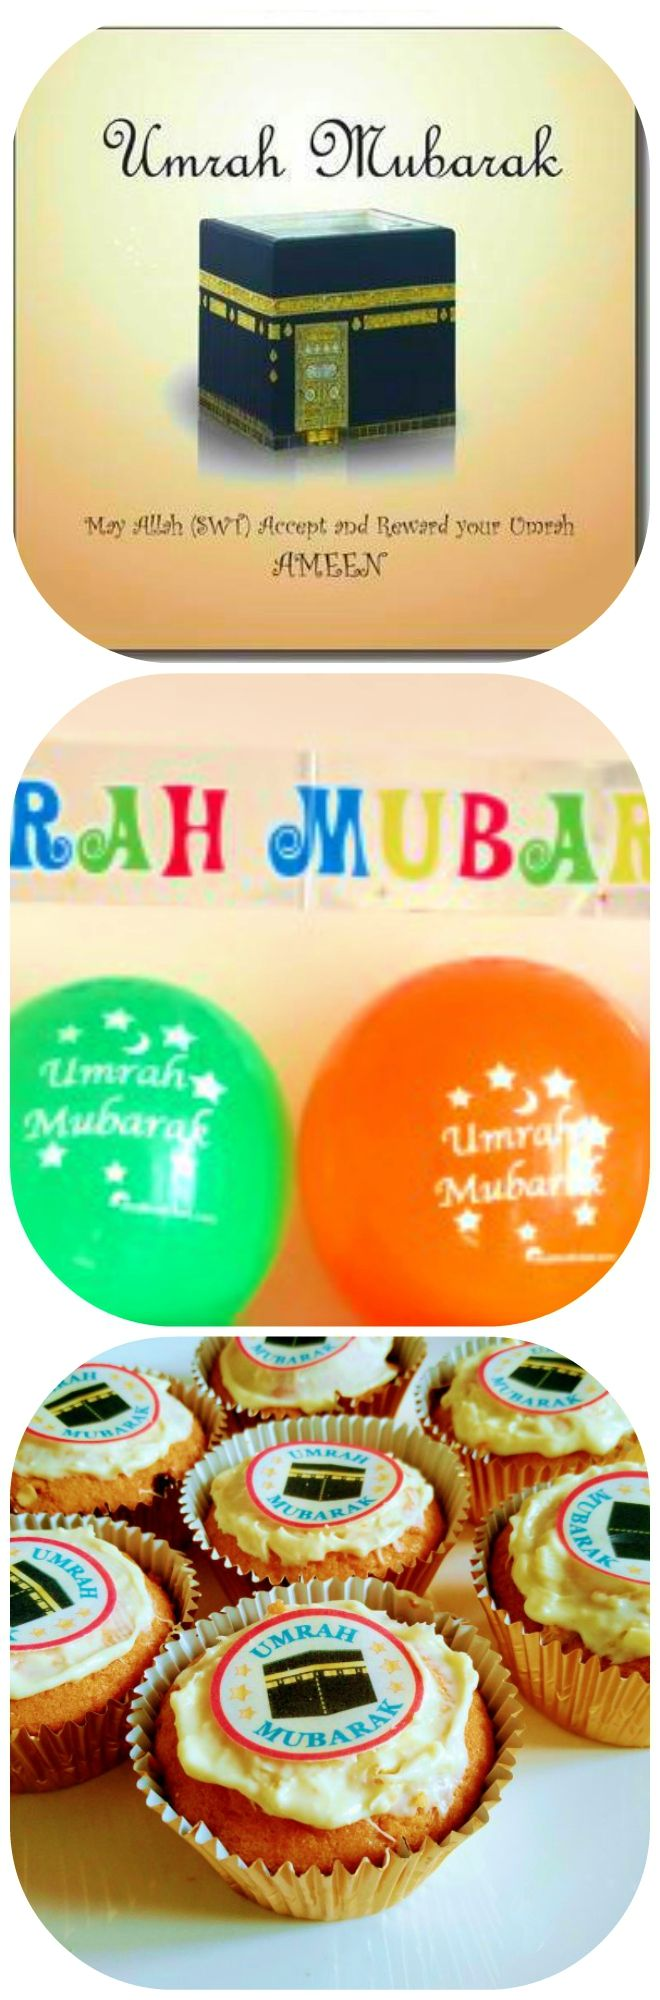 Say Umrah Mubarak with our umra  card £2.50 and cupcake toppers 15 for £2   Get an instant 20% discount when you join the VIP club  Here's the link http://eepurl.com/c95ur9